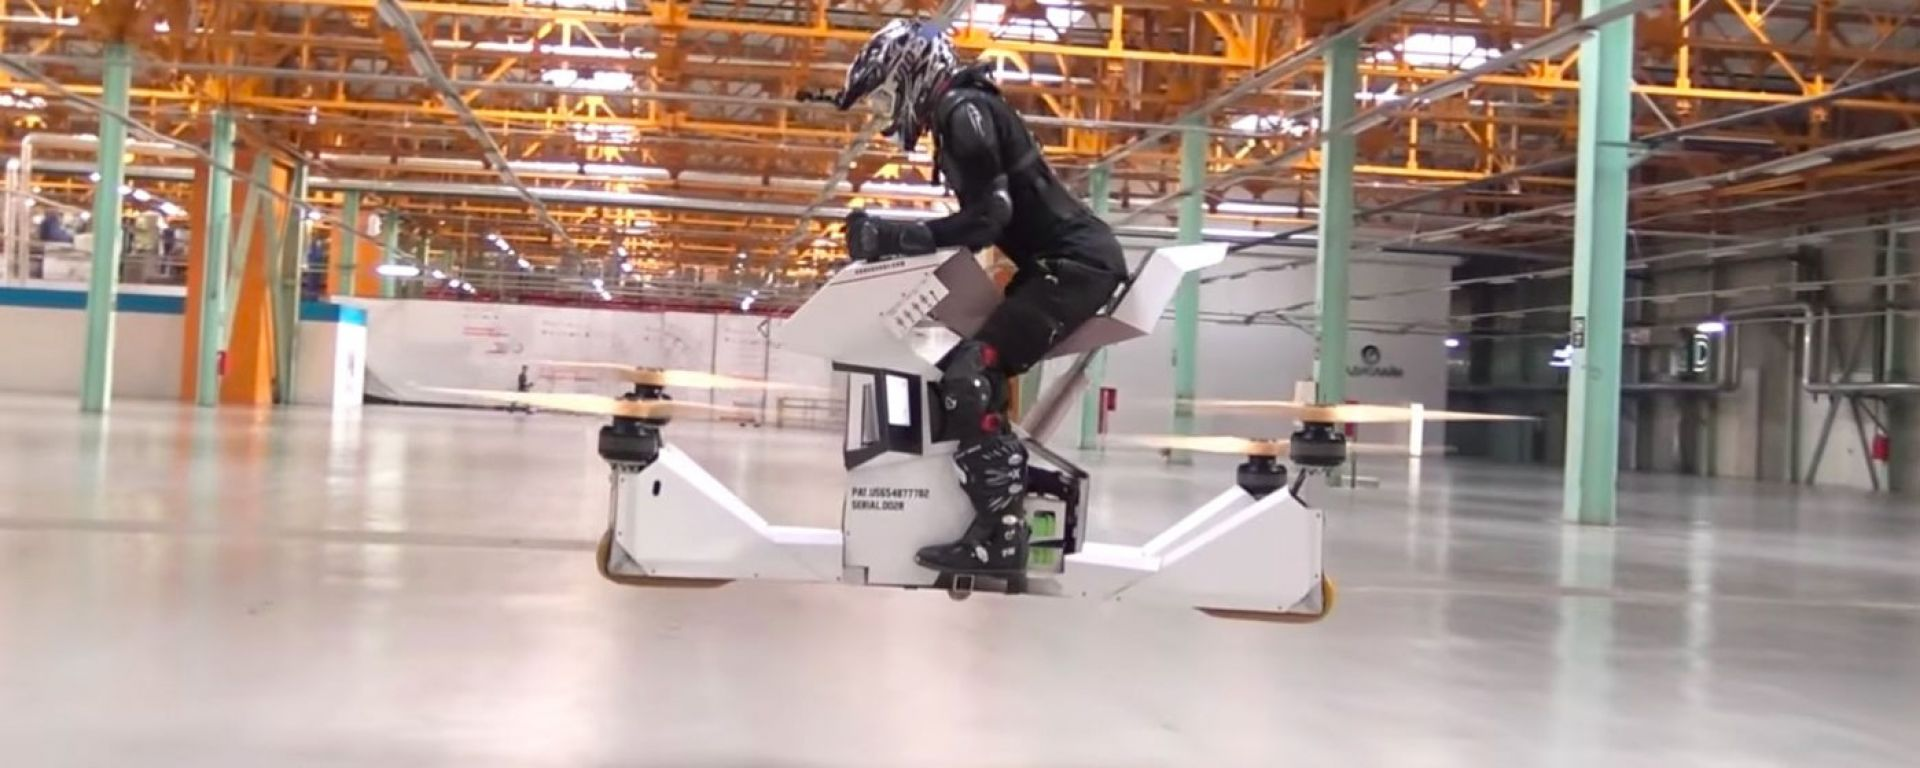 Hoverbike Scorpion-3 by Hoversurf